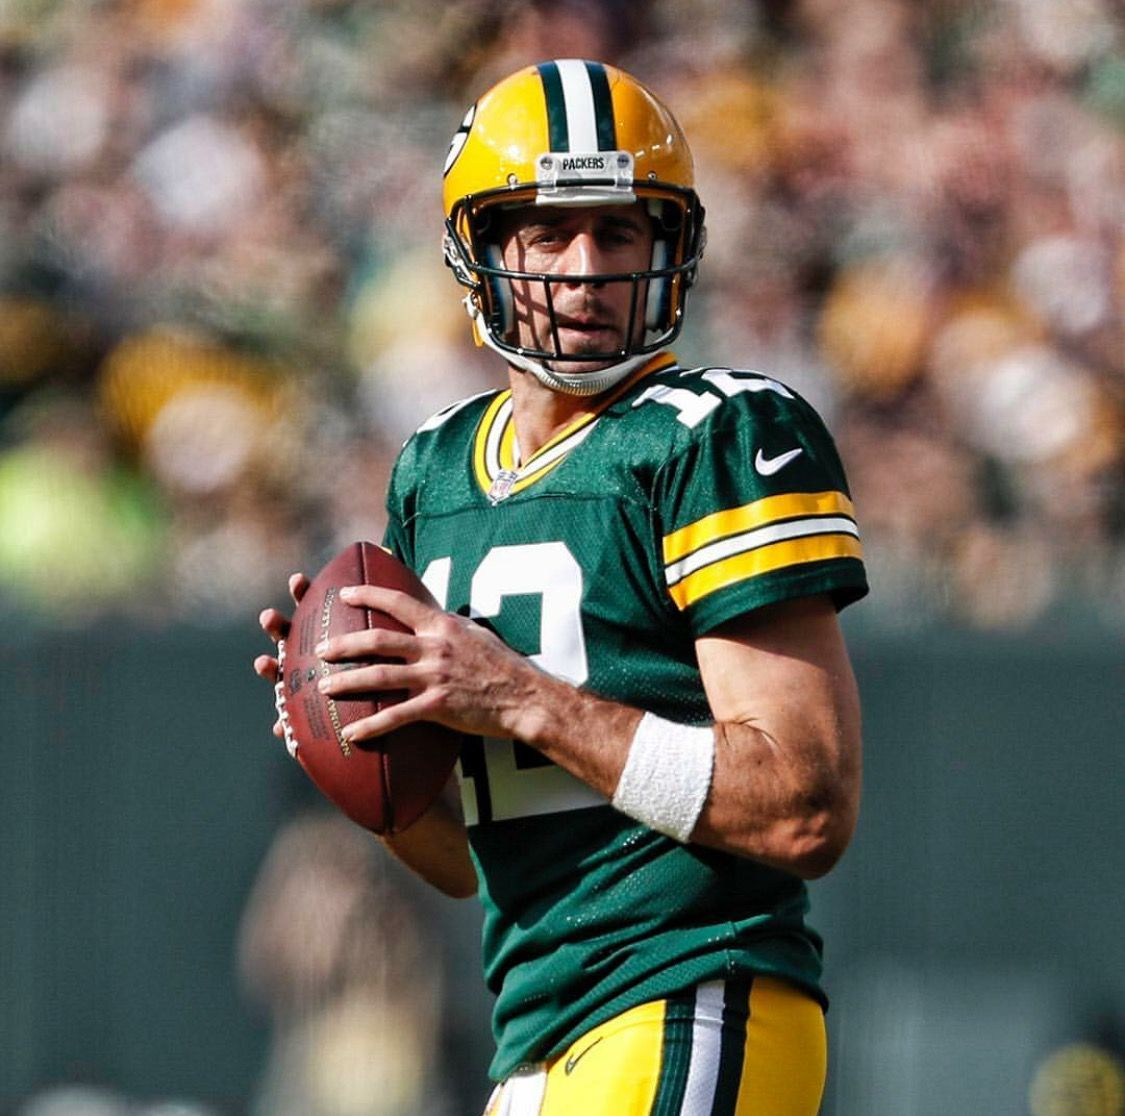 Pin By Alex Campbell On Packers The World S Team In 2020 Rodgers Packers Aaron Rodgers Green Bay Packers